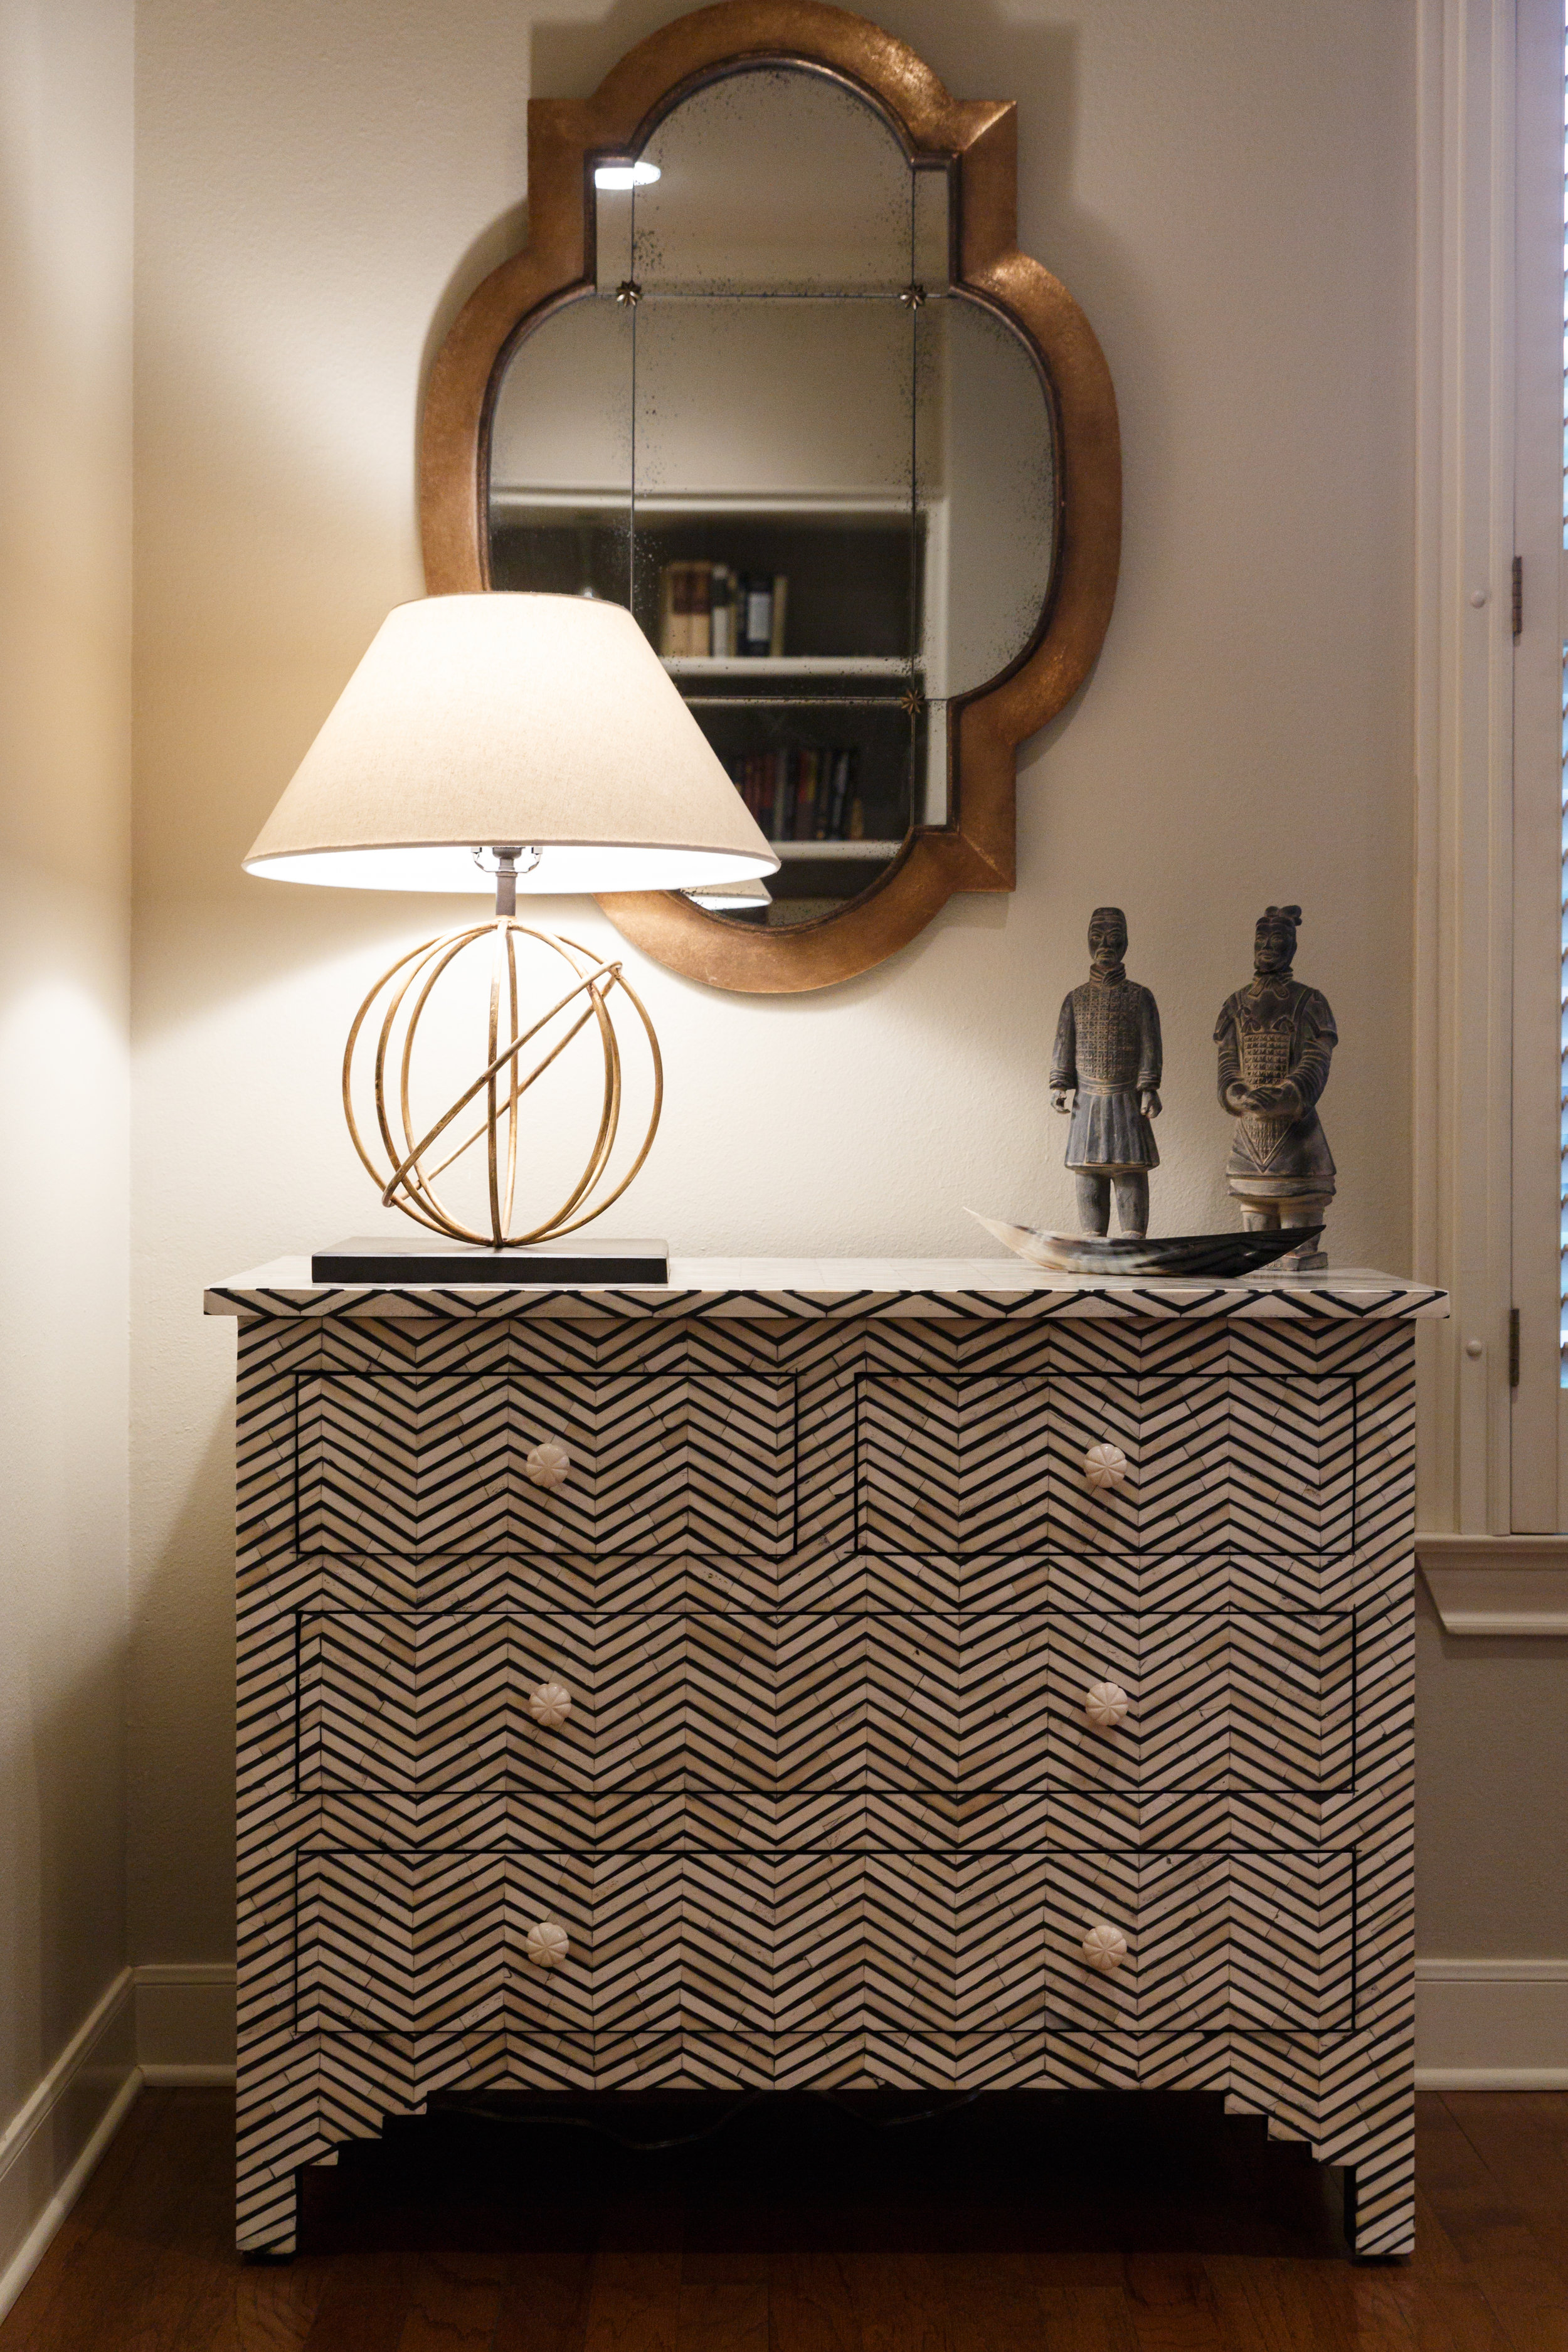 Designer Console Table and Lighting